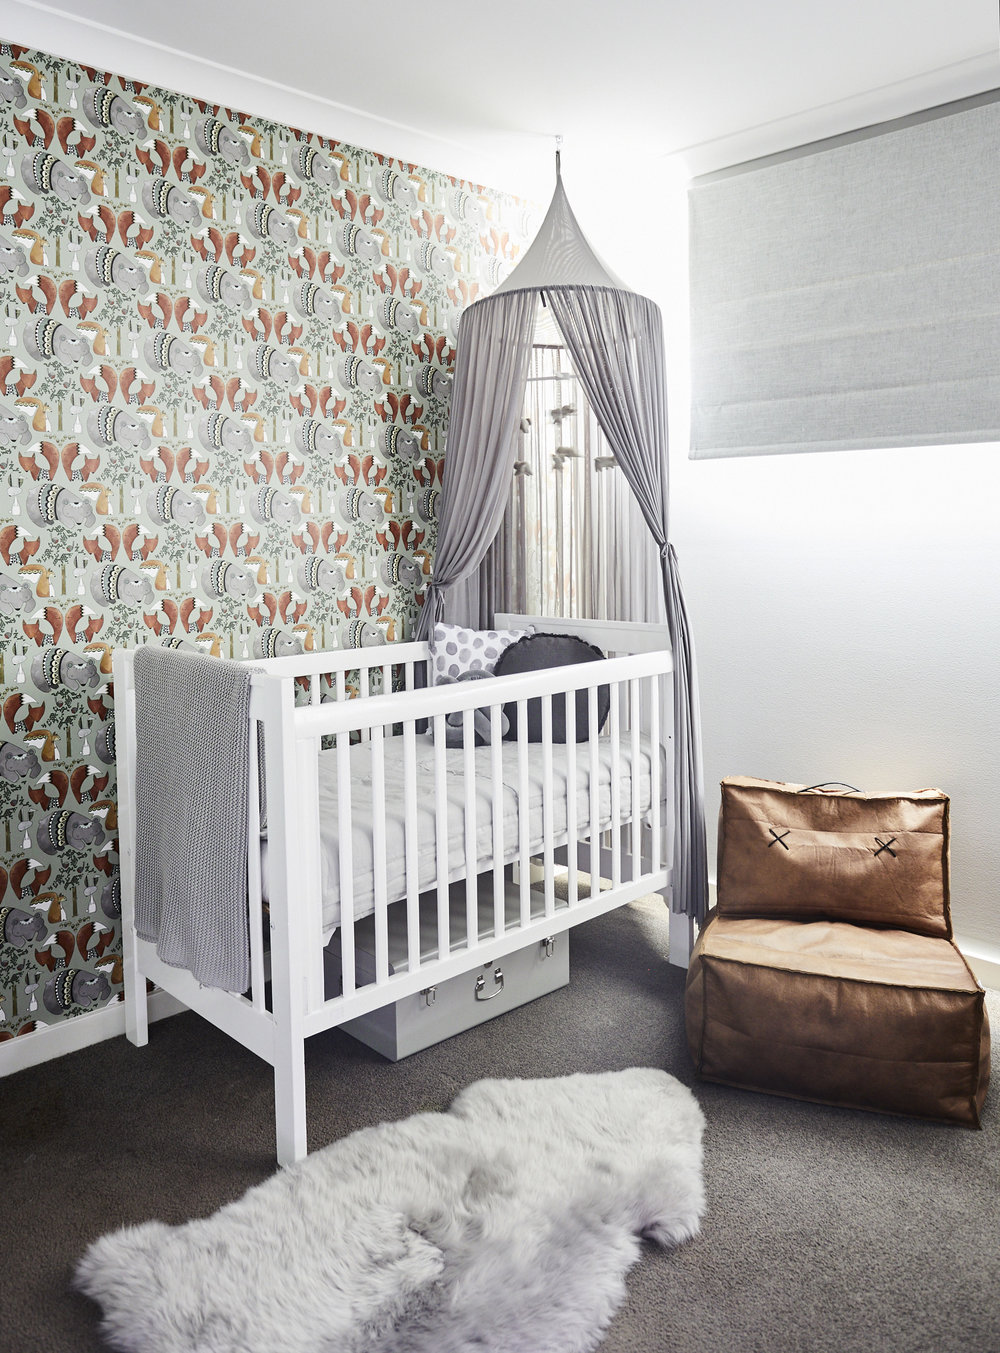 Baby nursery with cot and wall paper